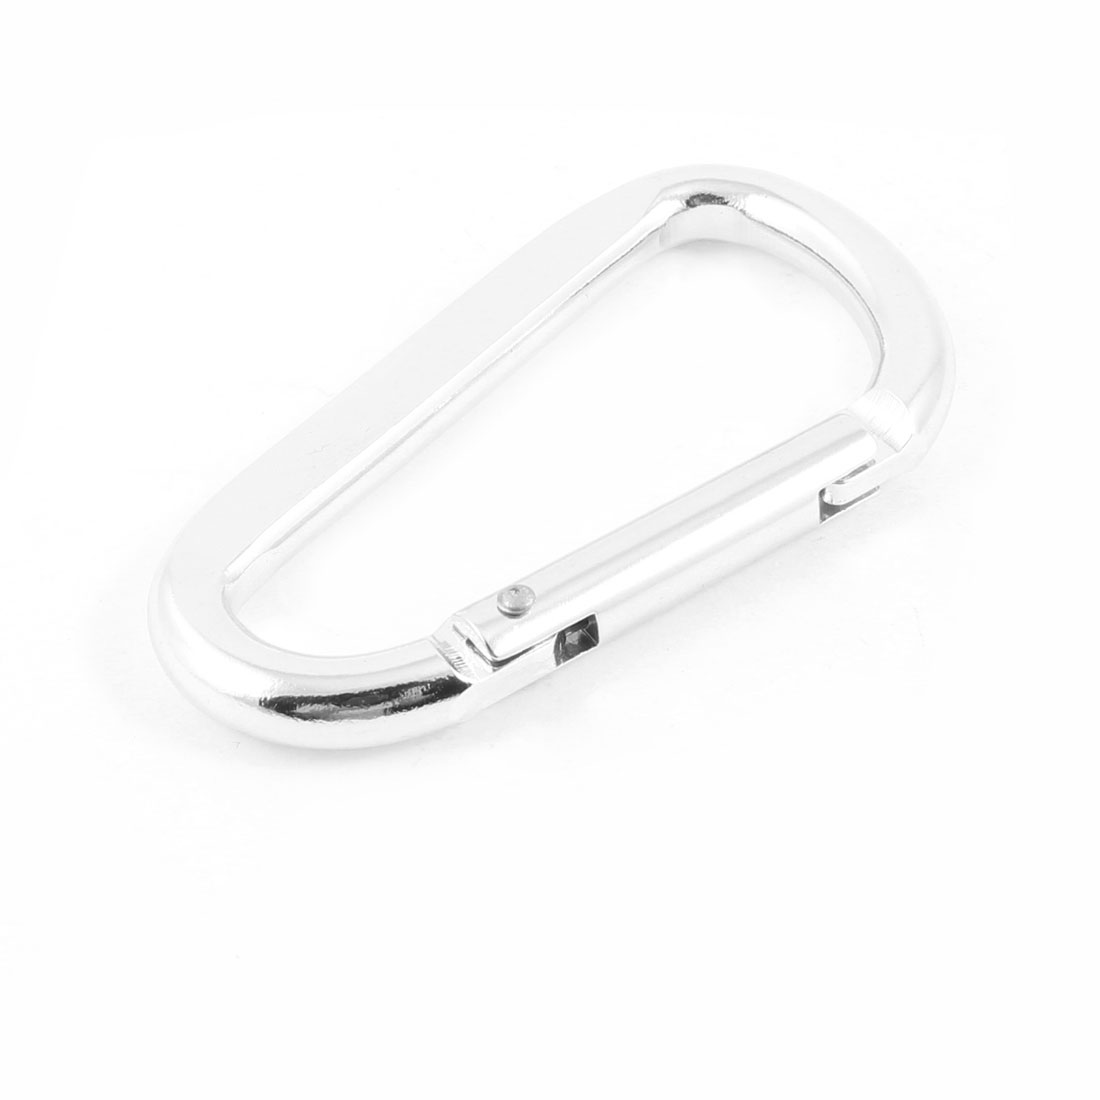 Hiking Spring Loaded Gate Carabiner Pouch Portable Bottle Holder Silver Tone